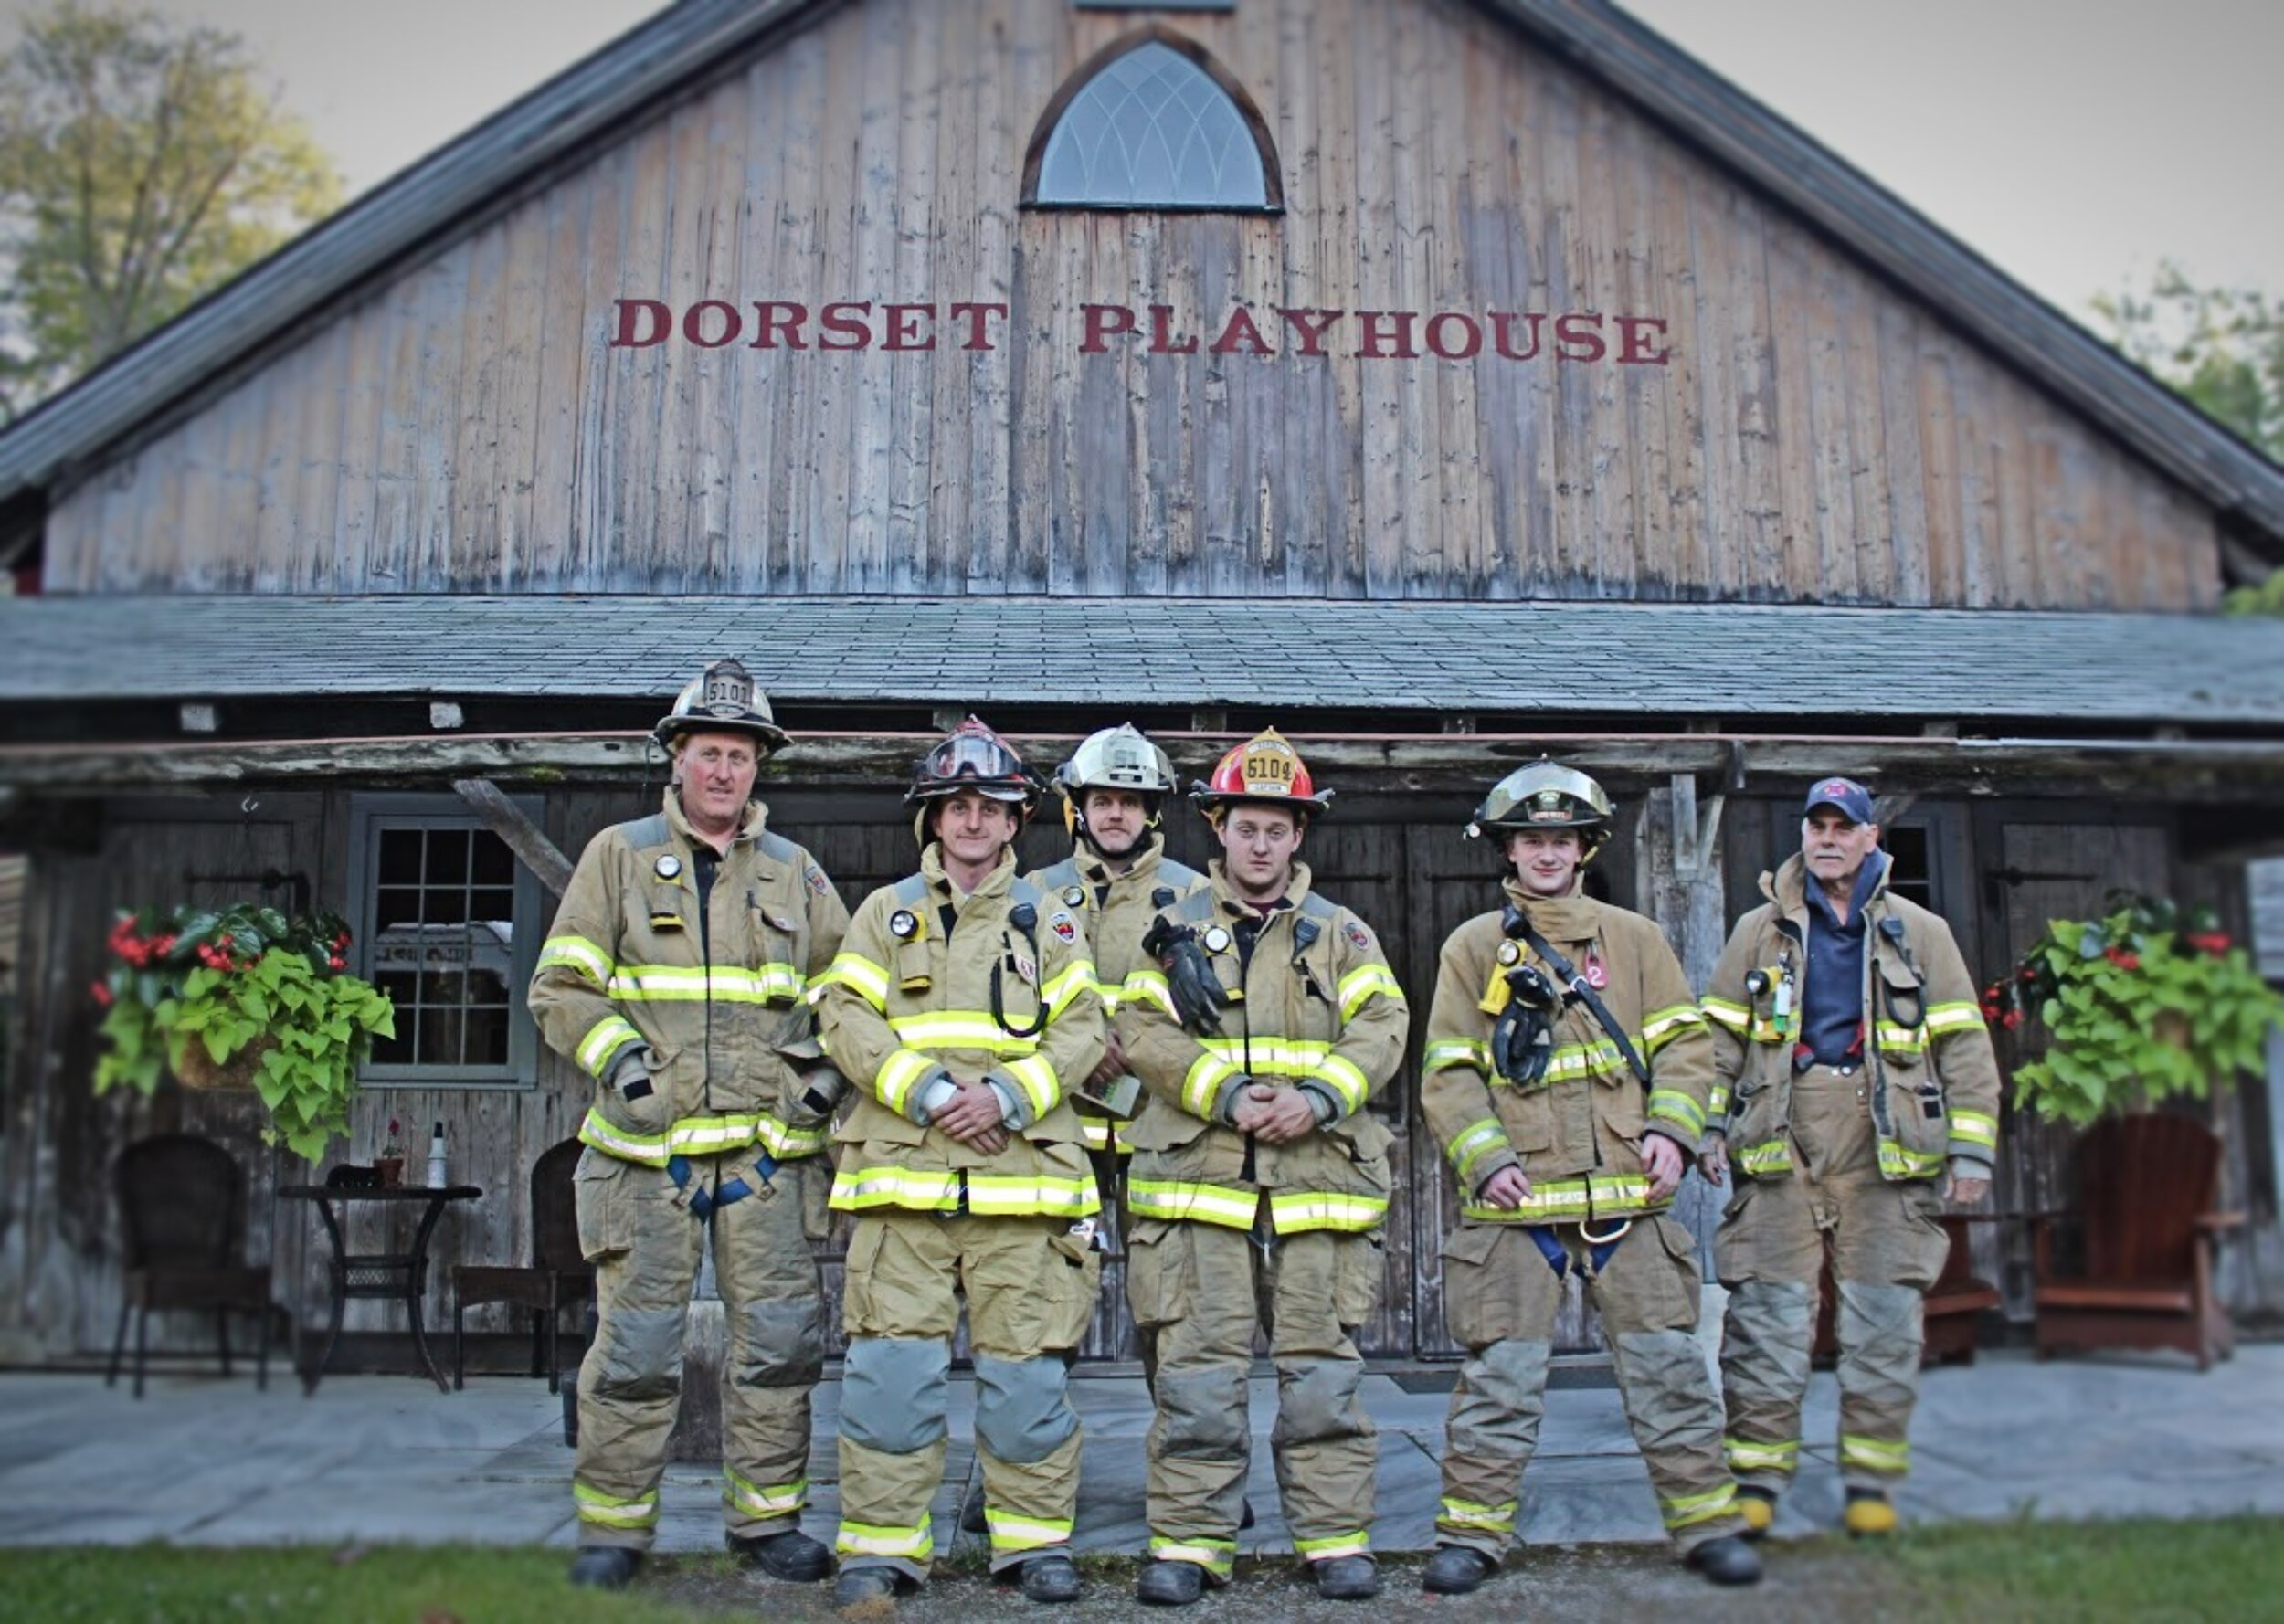 Dorset firefighters stop by Community Partner Night